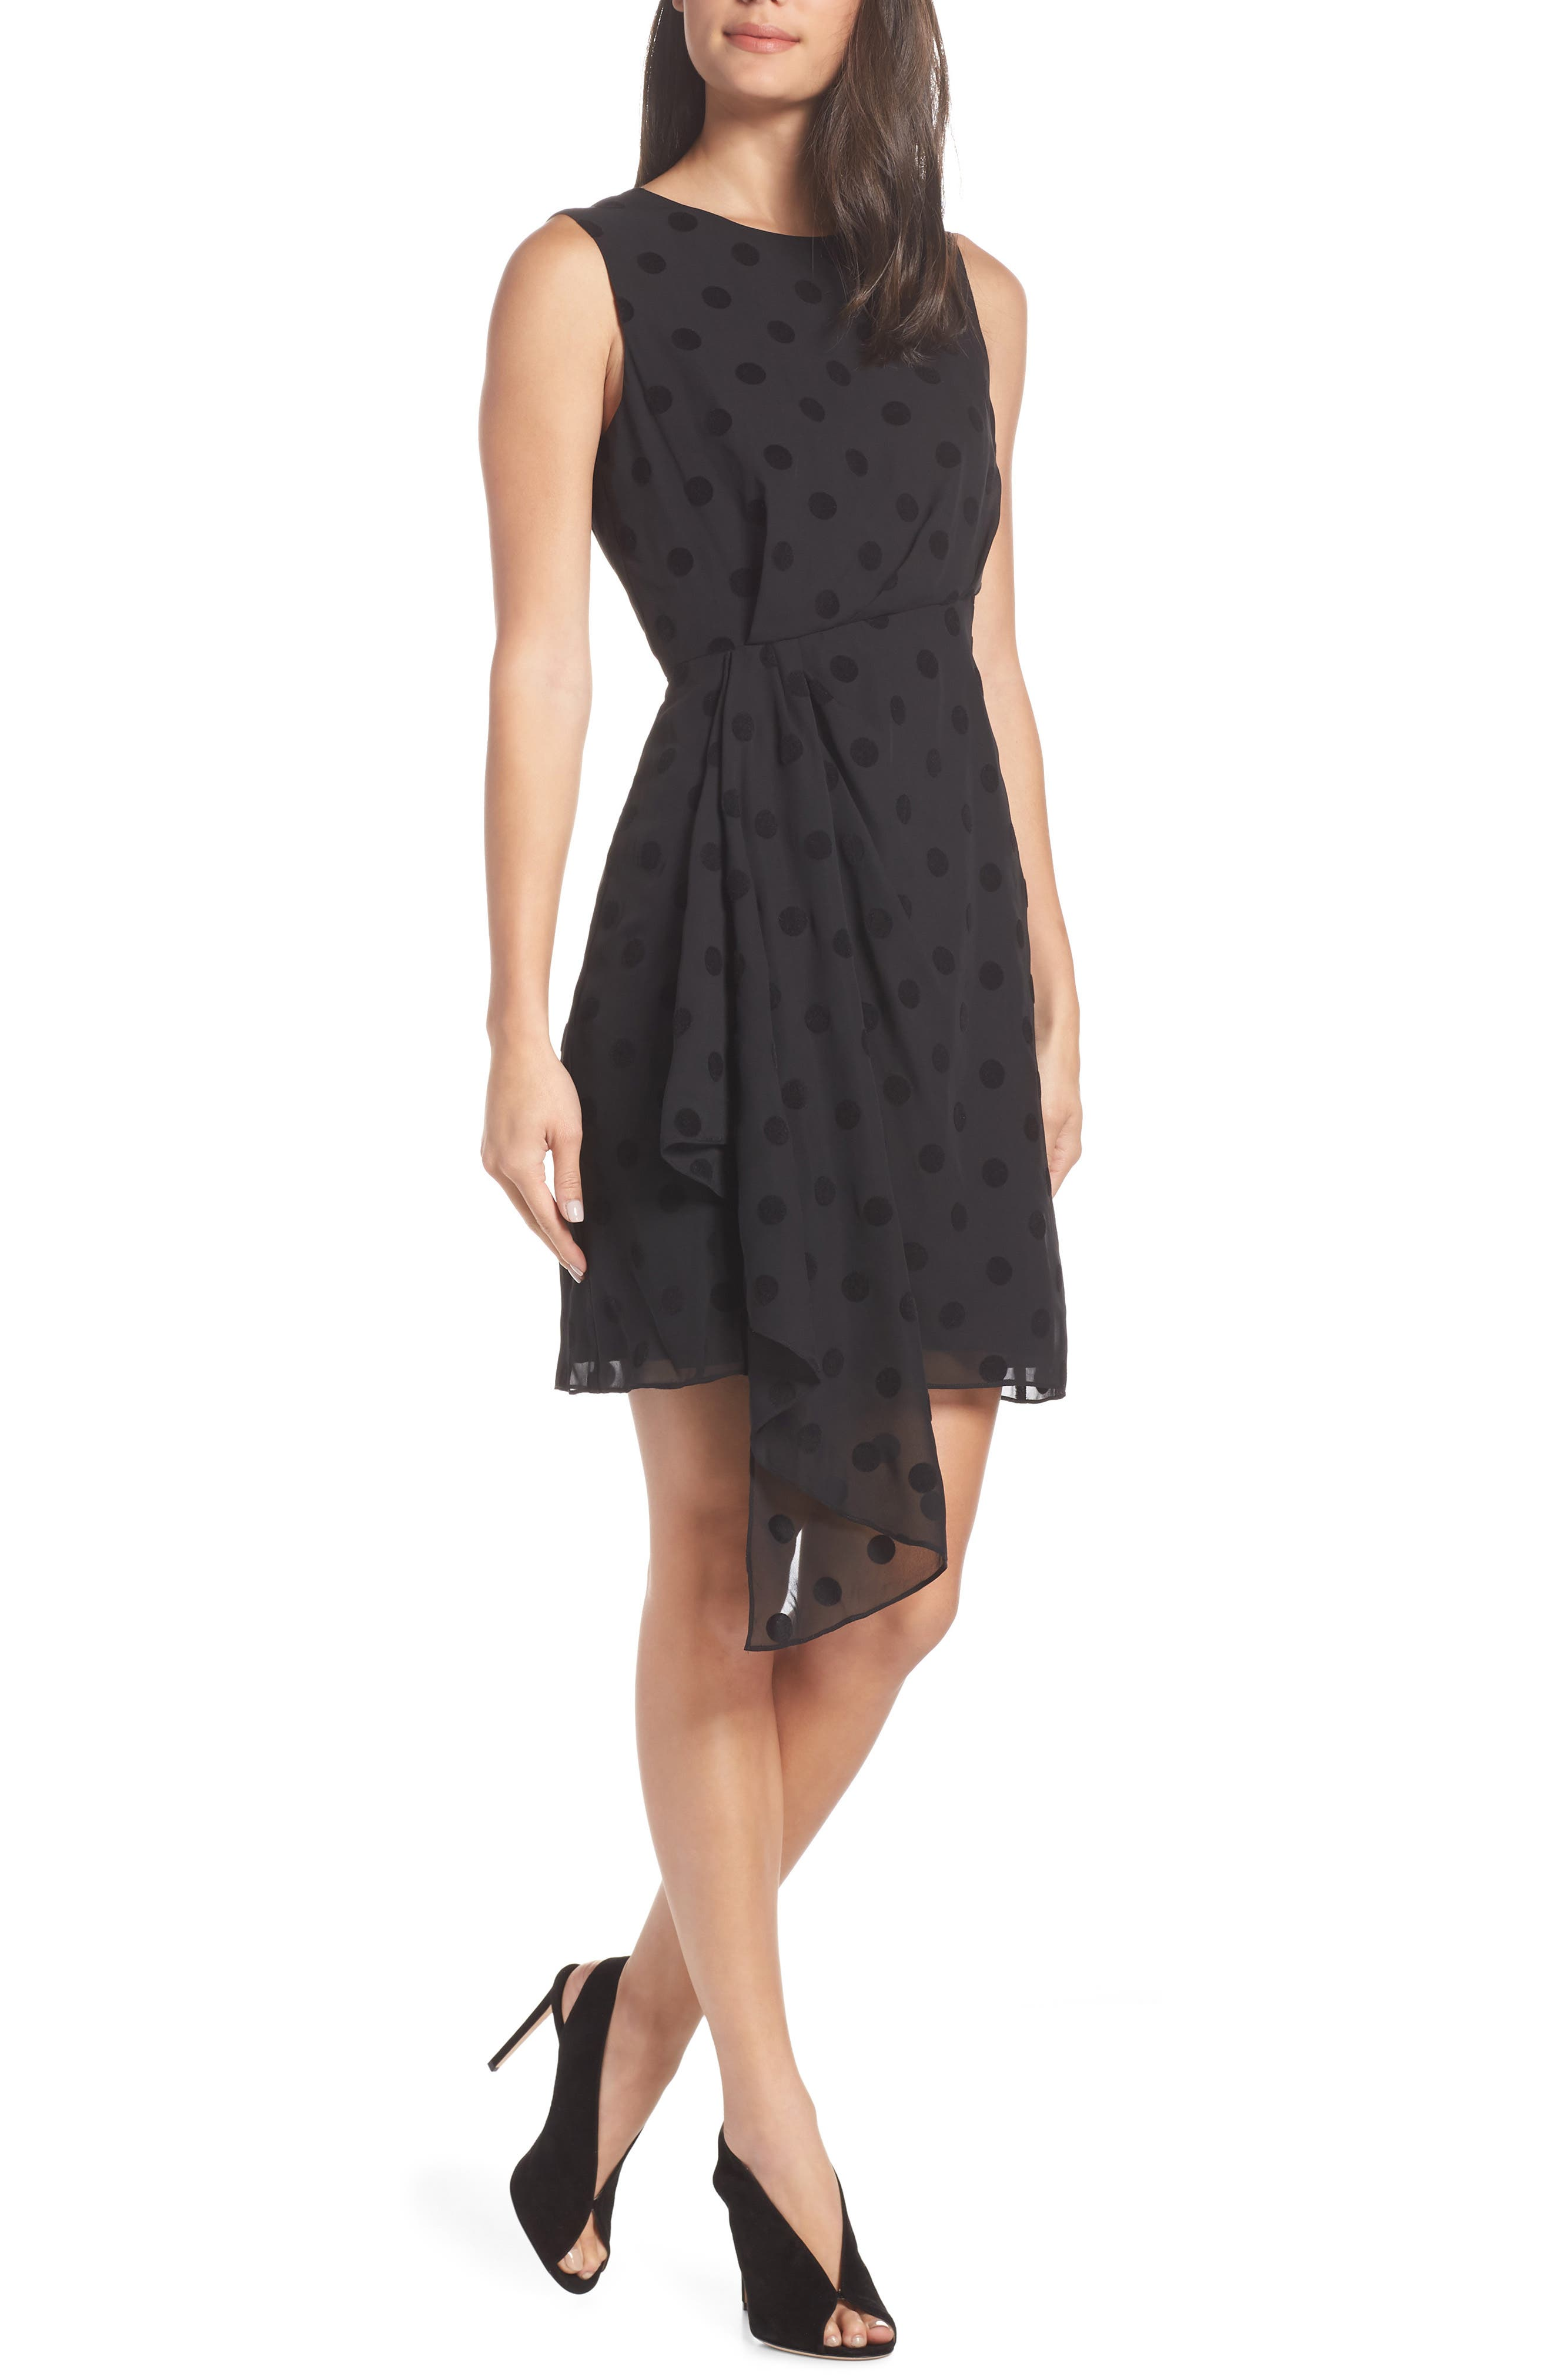 CHARLES HENRY Side Ruched Drape Swiss Dot Dress in Black